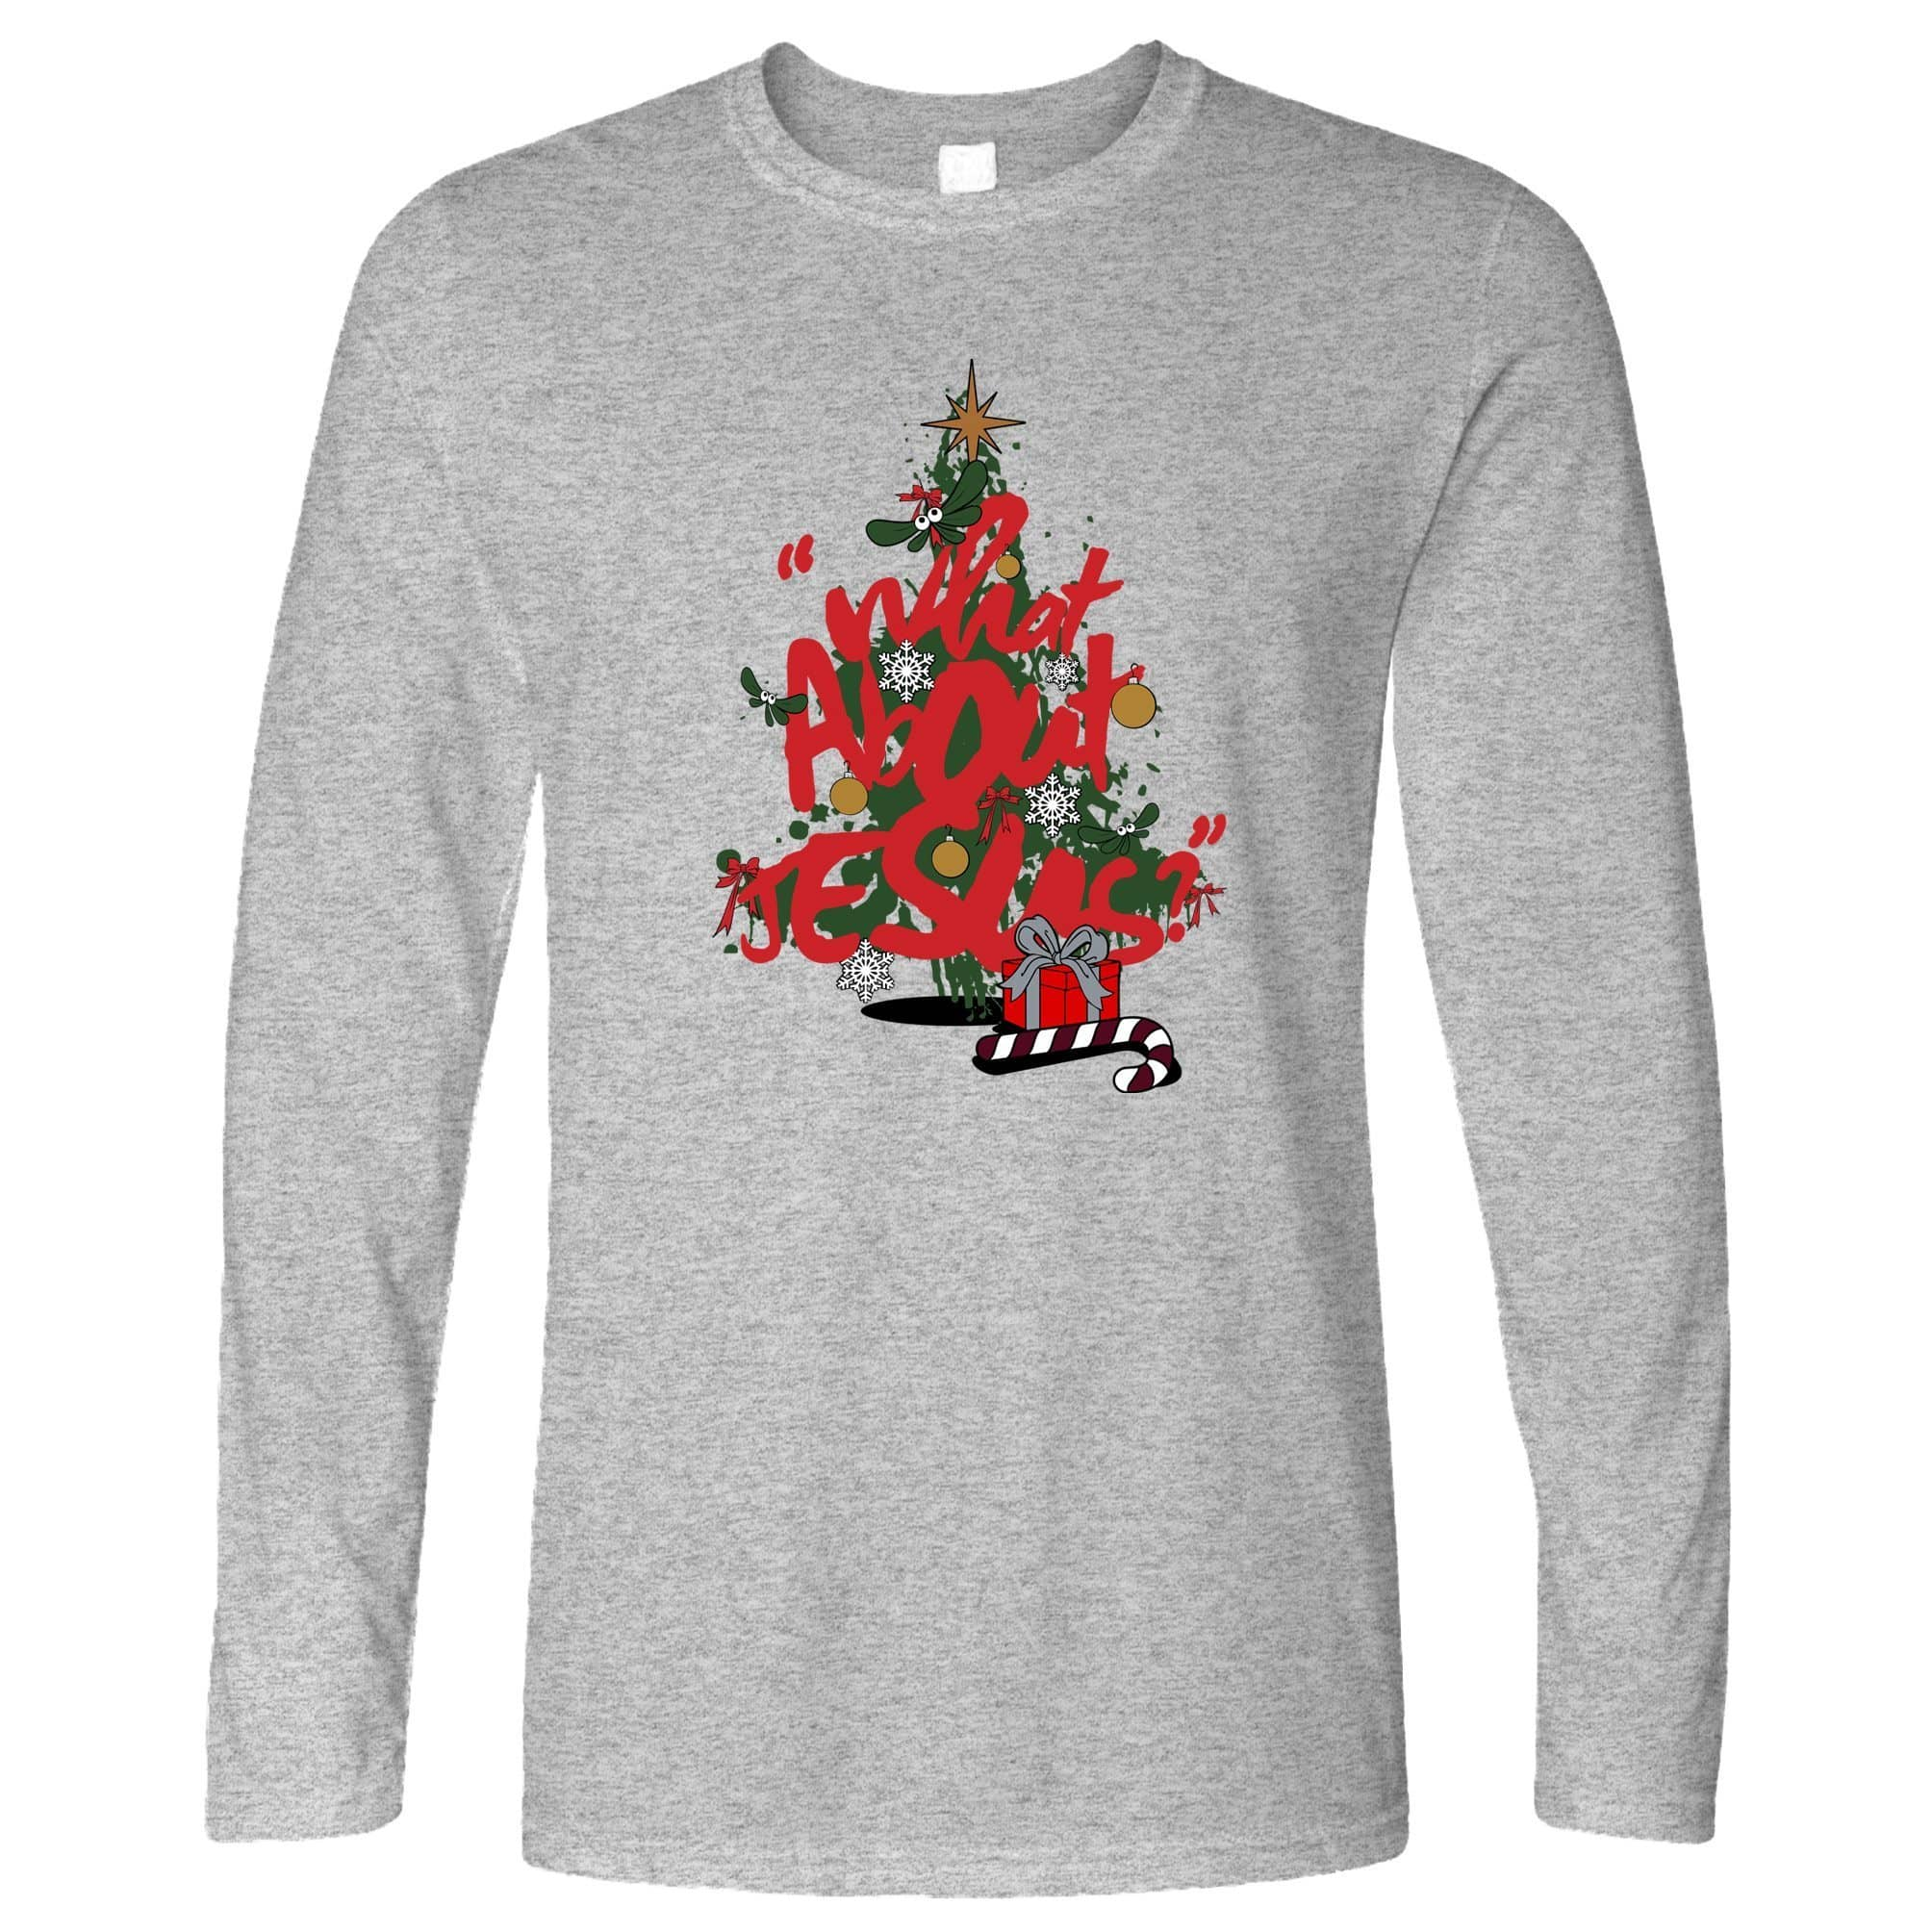 Christmas Long Sleeve What About Jesus Graffiti T-Shirt